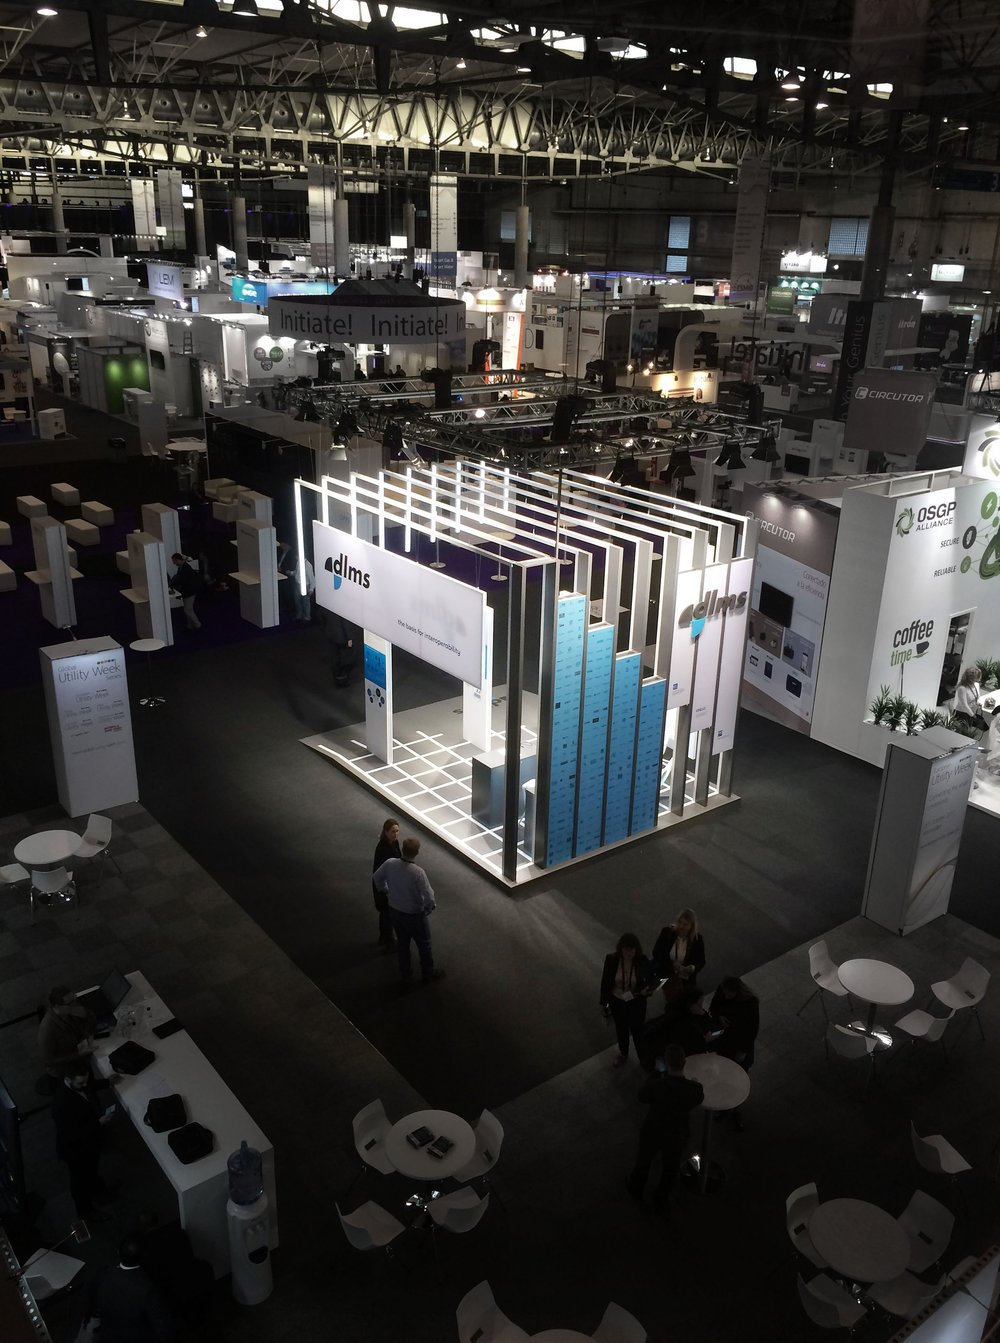 dlms_tradefair-exhibition-design_coordination-berlin_03.jpg